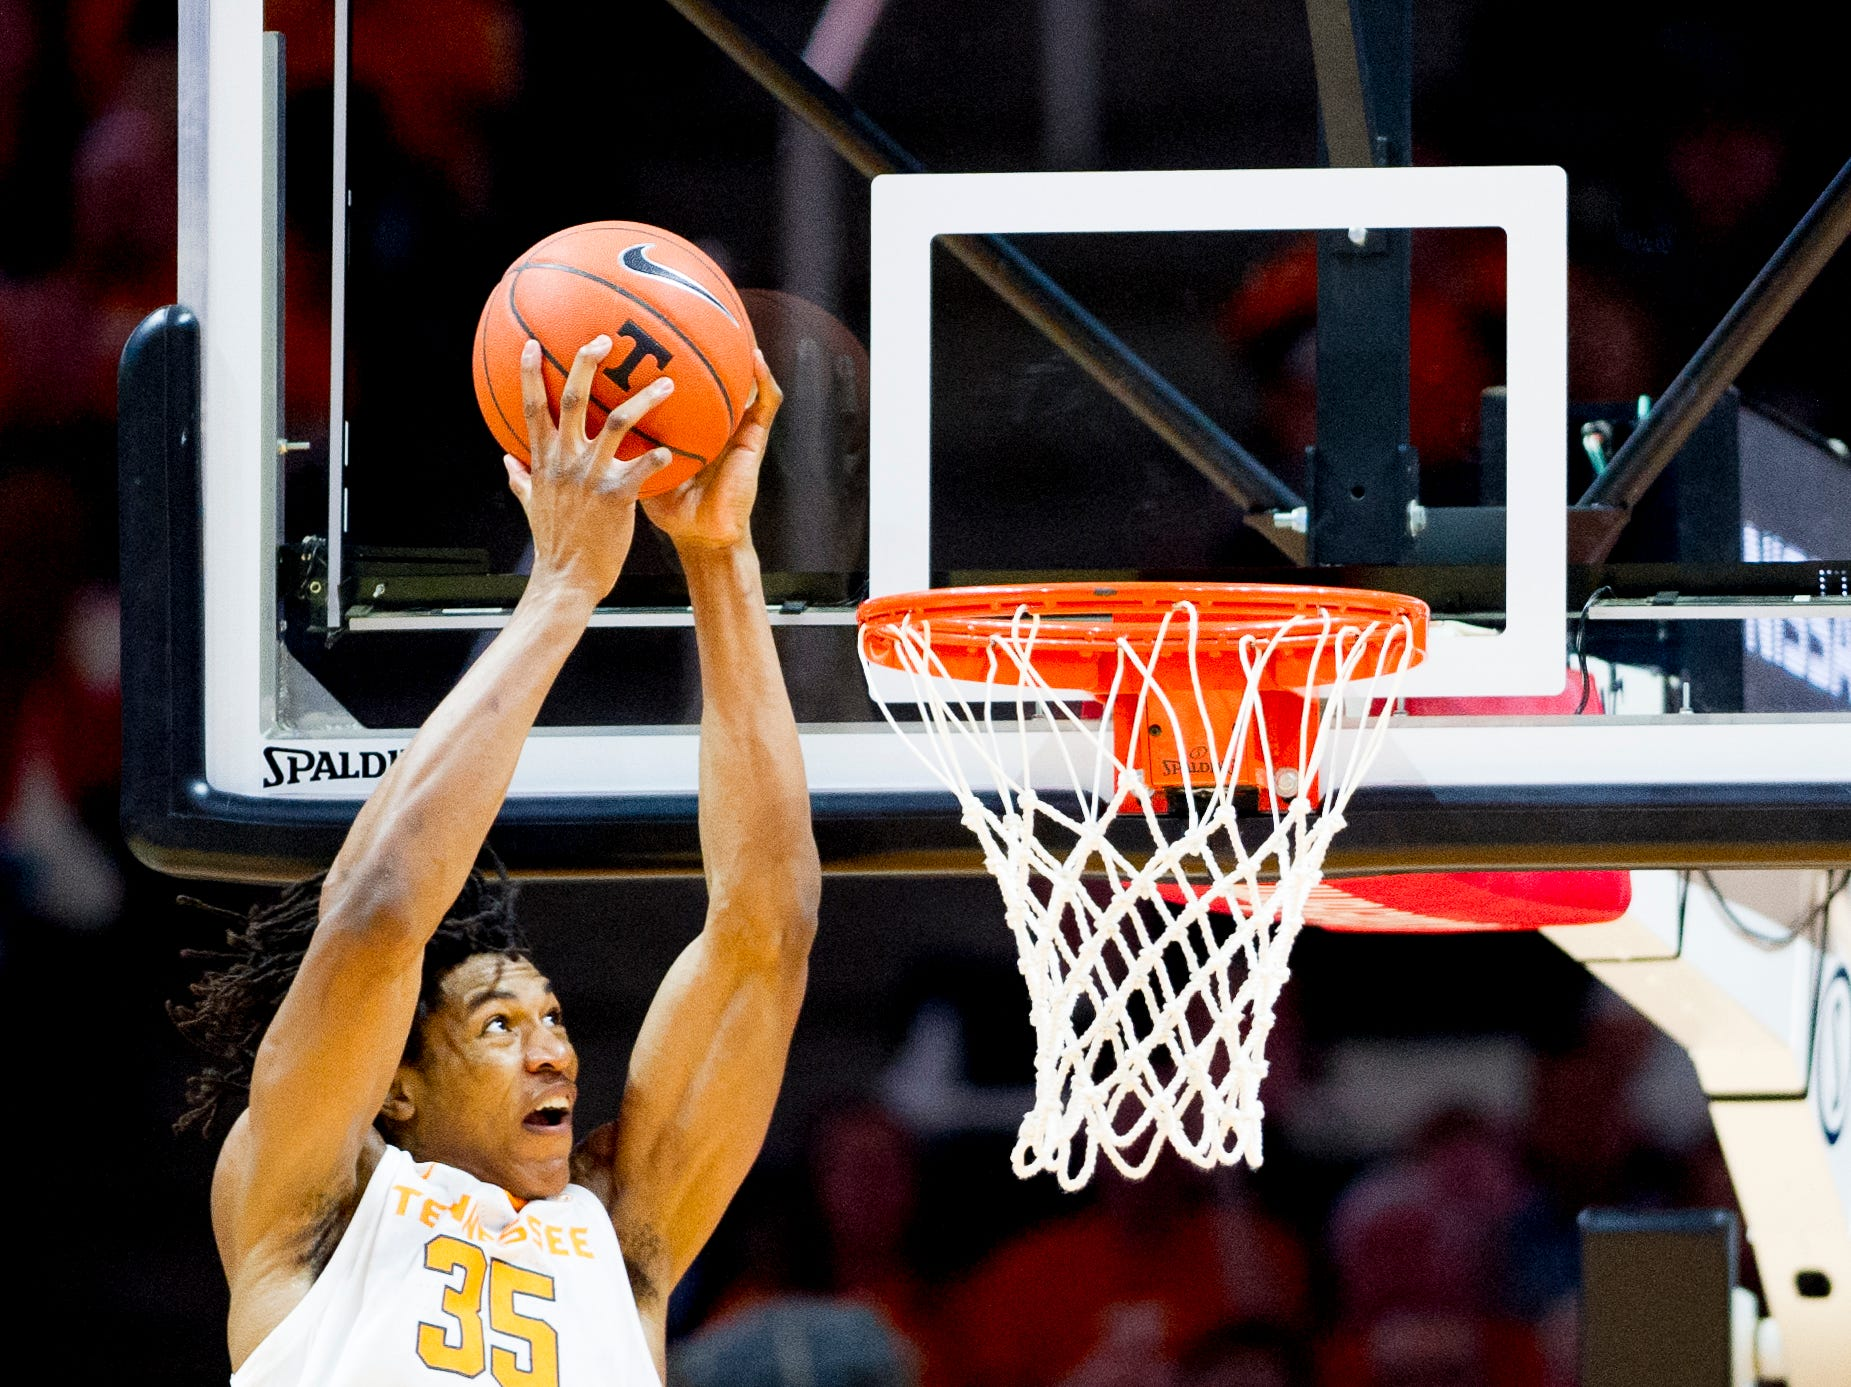 Tennessee guard/forward Yves Pons (35) dunks during a game between Tennessee and Tennessee Tech at Thompson-Boling Arena in Knoxville, Tennessee on Saturday, December 29, 2018.